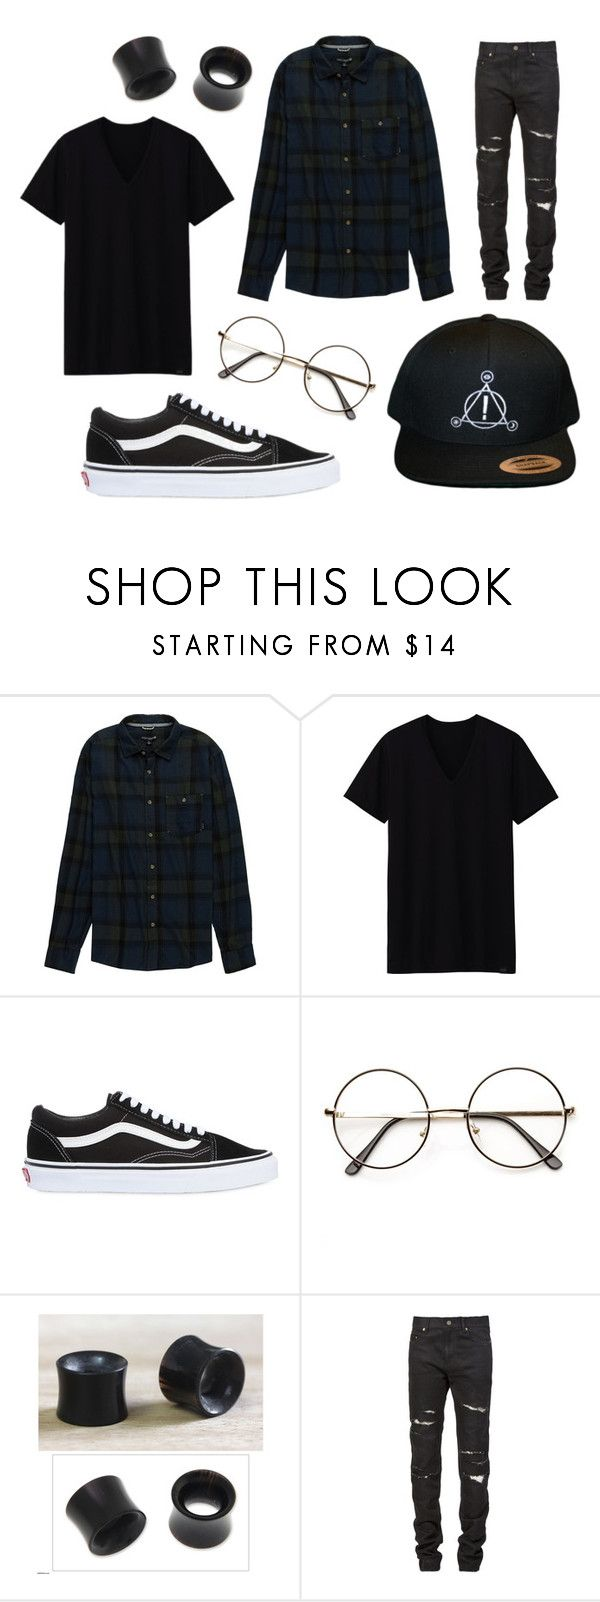 """Untitled #49"" by rainbowfiend on Polyvore featuring Ocean Current, Uniqlo, Vans, NOVICA and Yves Saint Laurent"